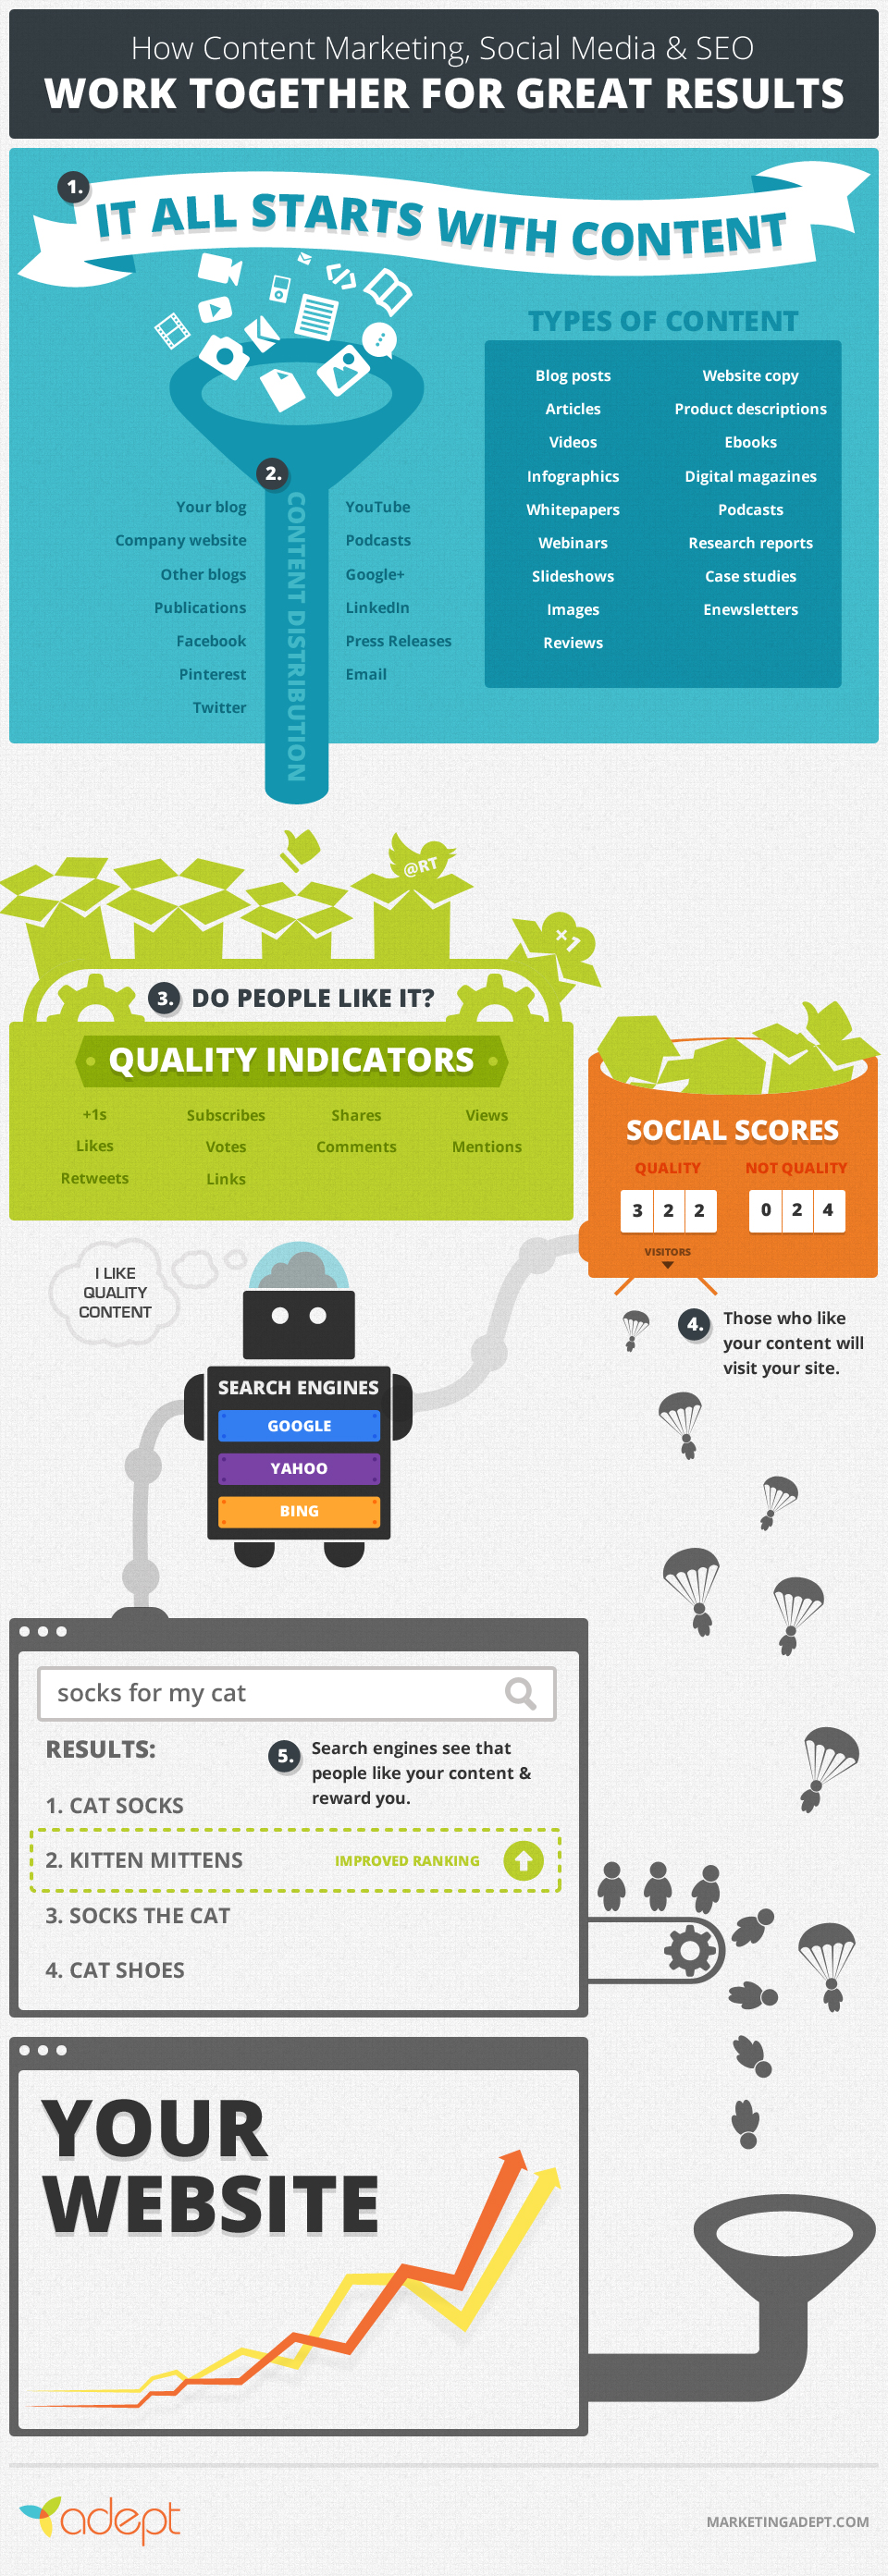 how-content-marketing-social-media-killer-seo_51561e1a612f2